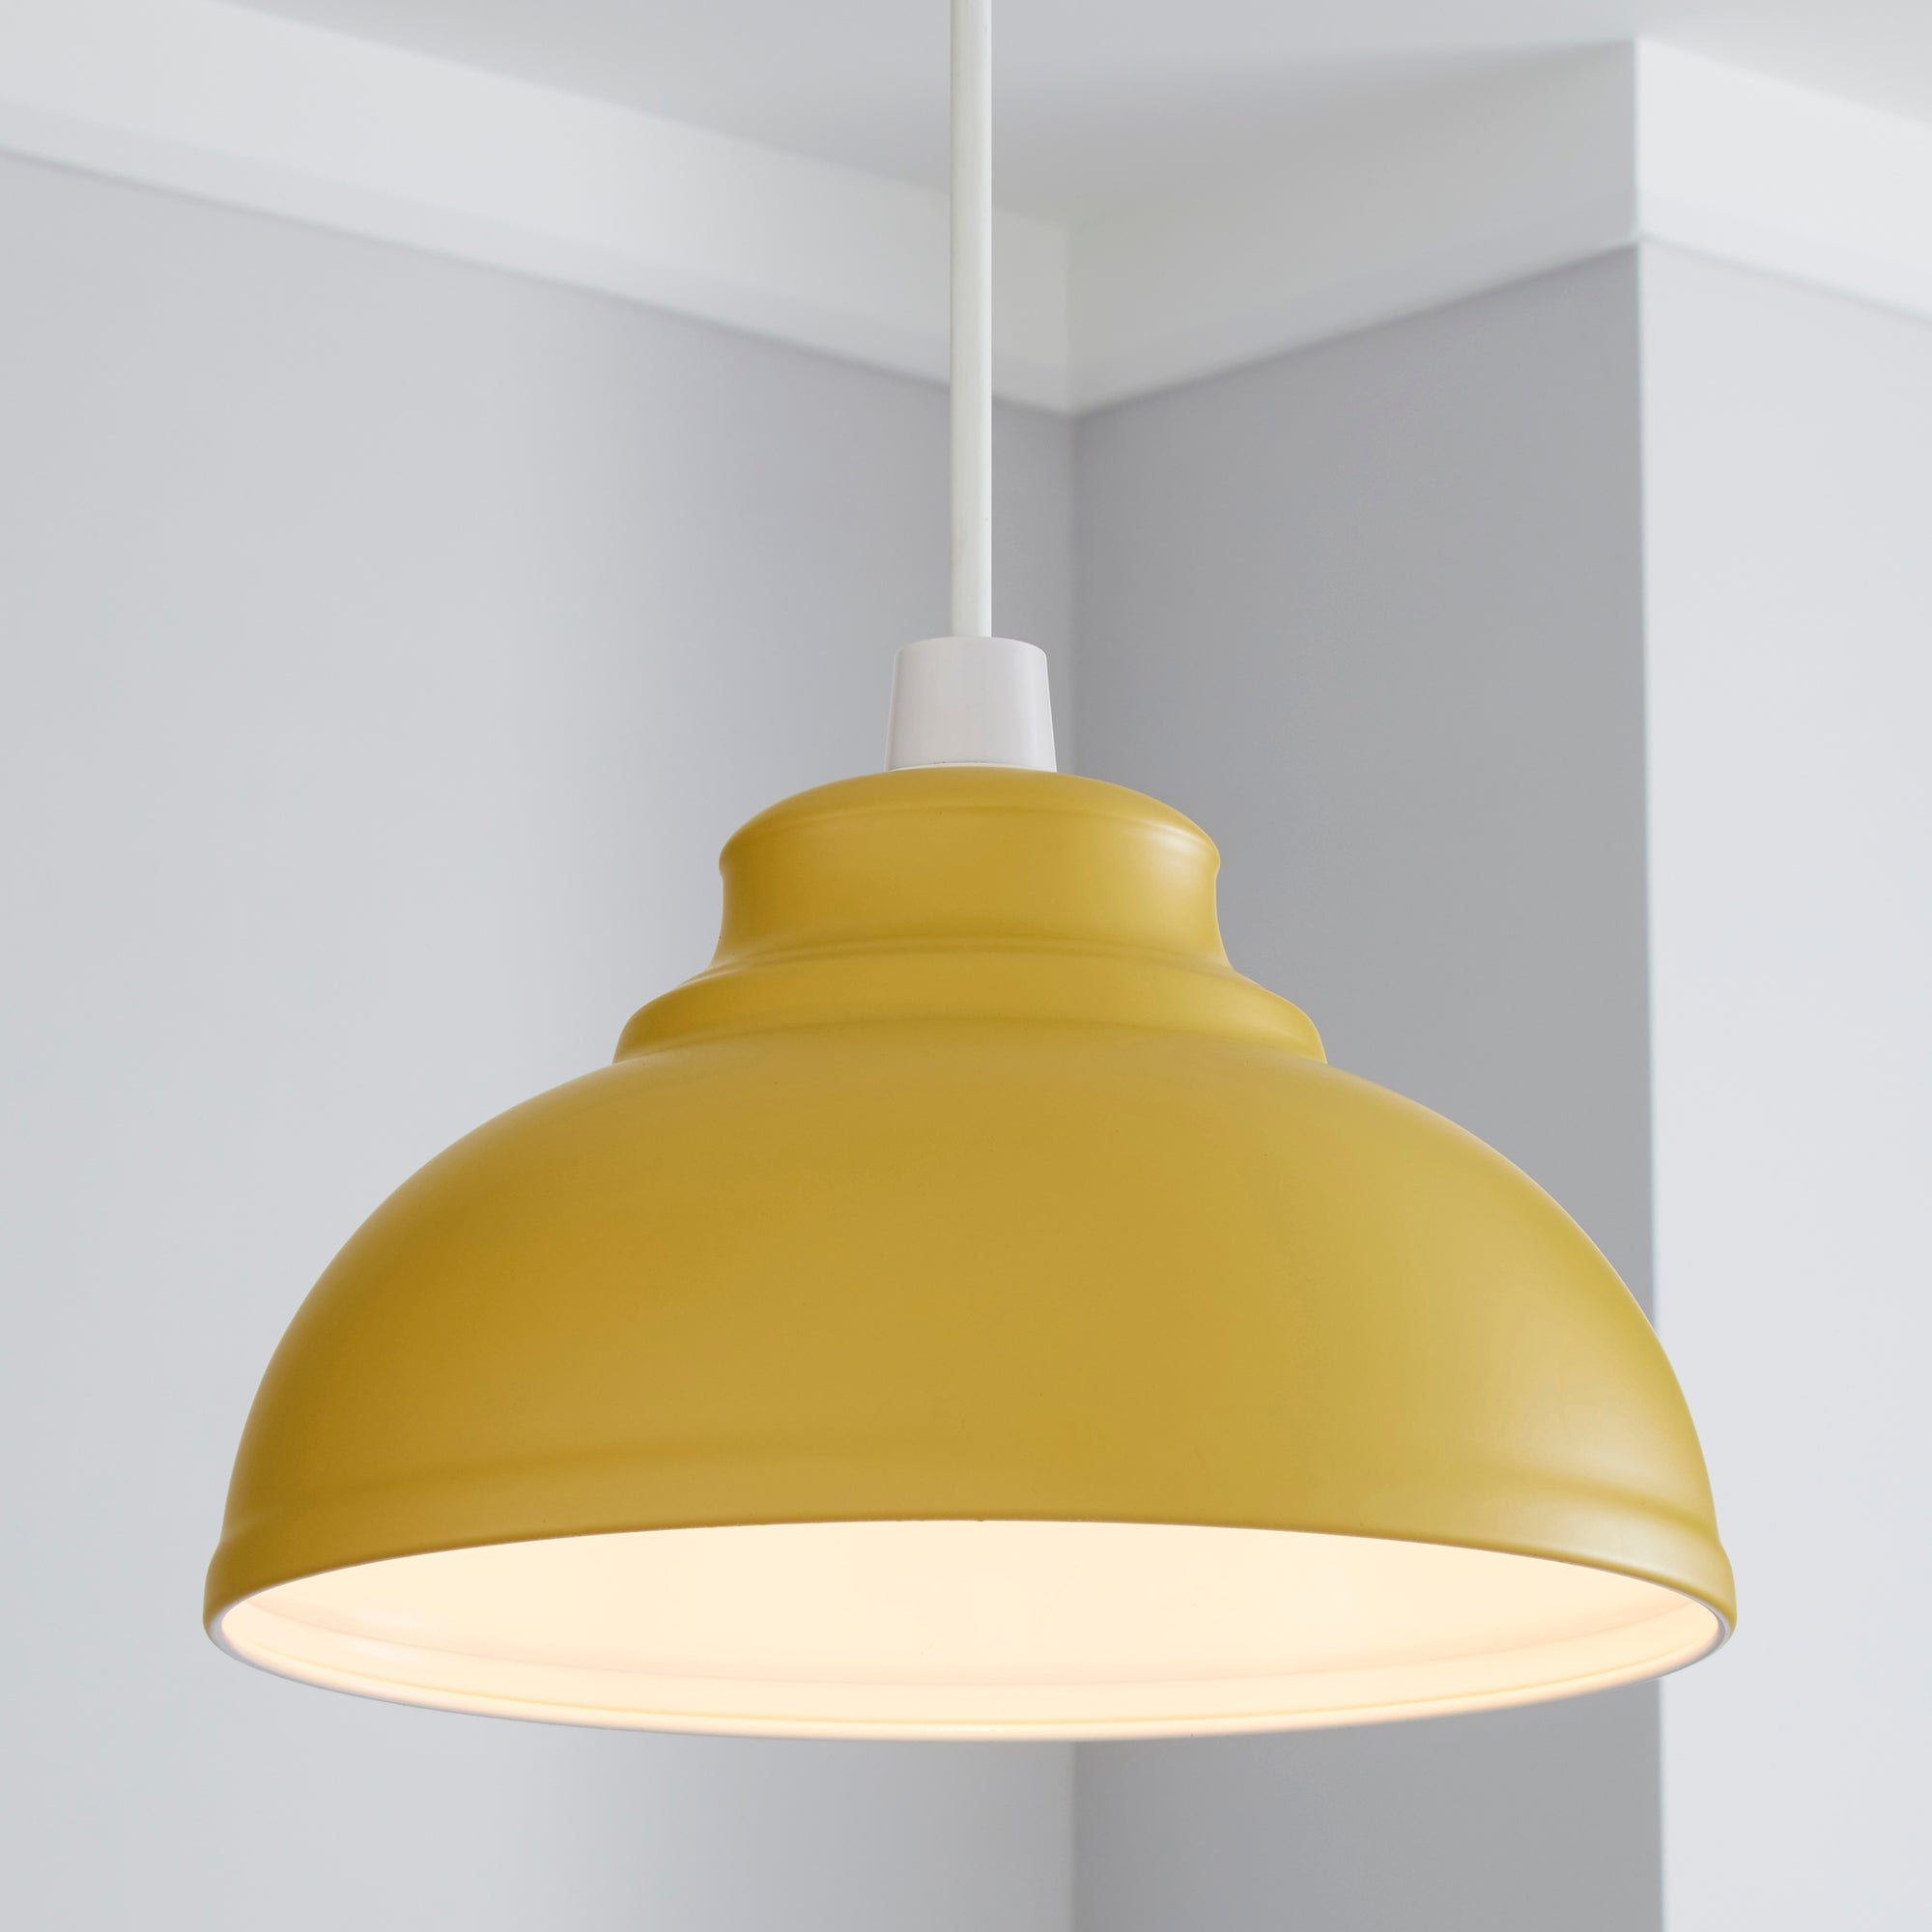 163 8 00 For Ochre Galley Pendant Yellow Deal Direct Co Uk